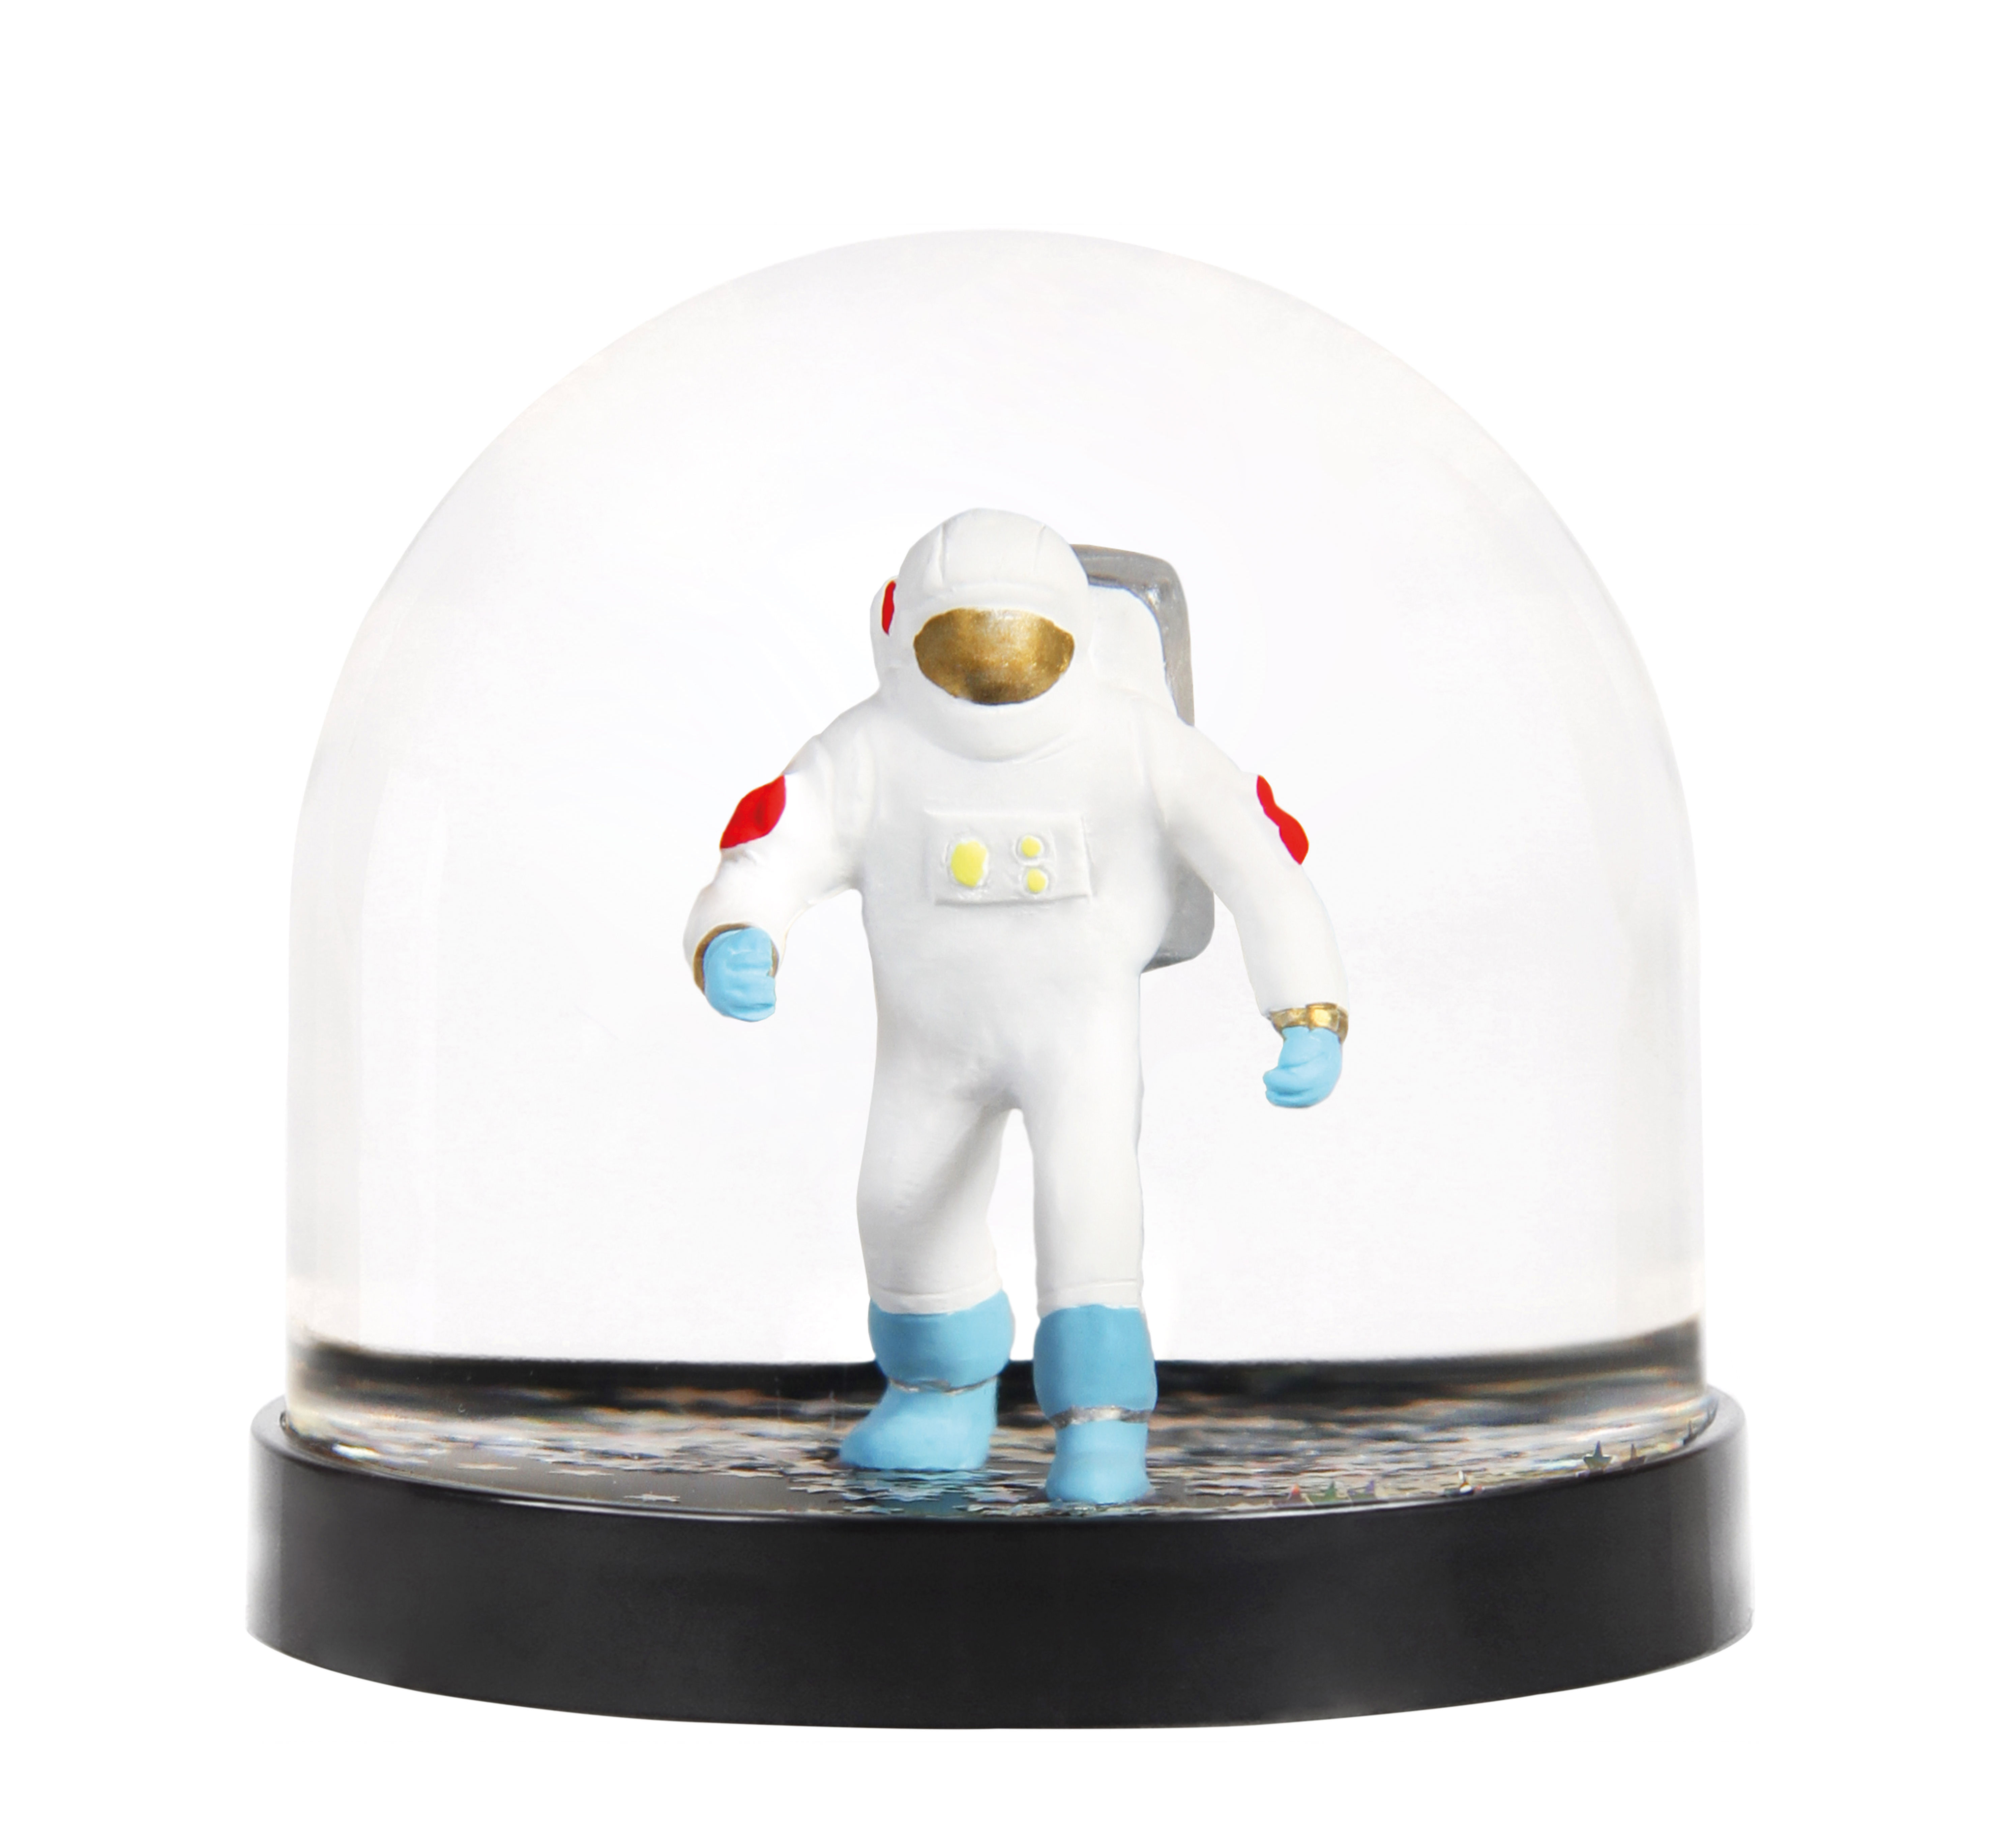 Decoration - Children's Home Accessories - Snowball - / Astronaut by & klevering - Astronaut - Mineral oil, Plastic